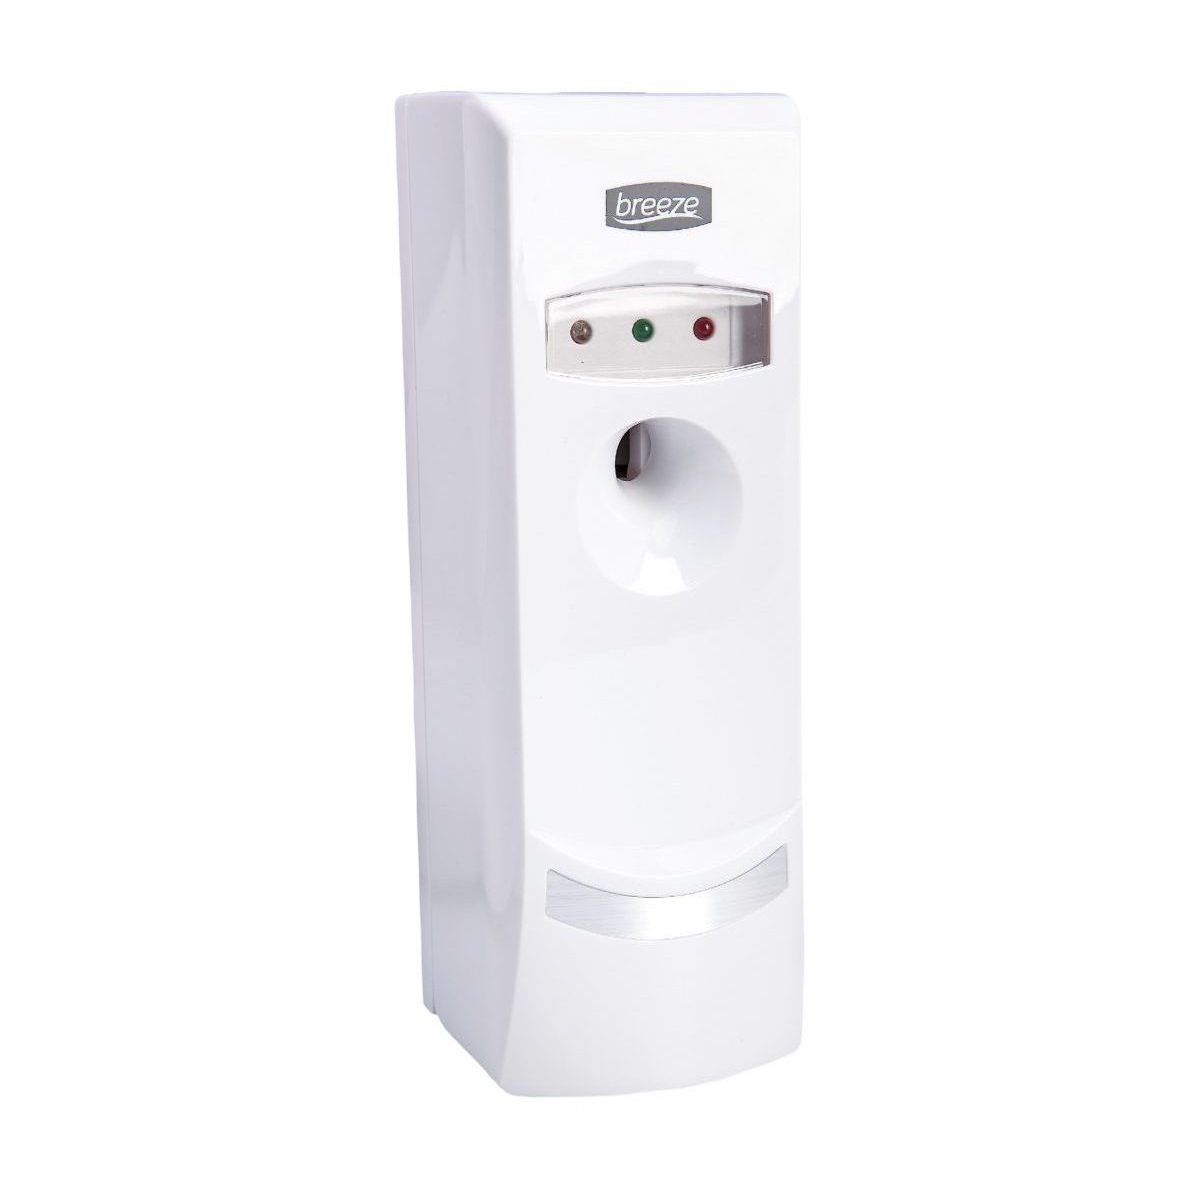 White Breeze Slim Air Freshener Dispenser